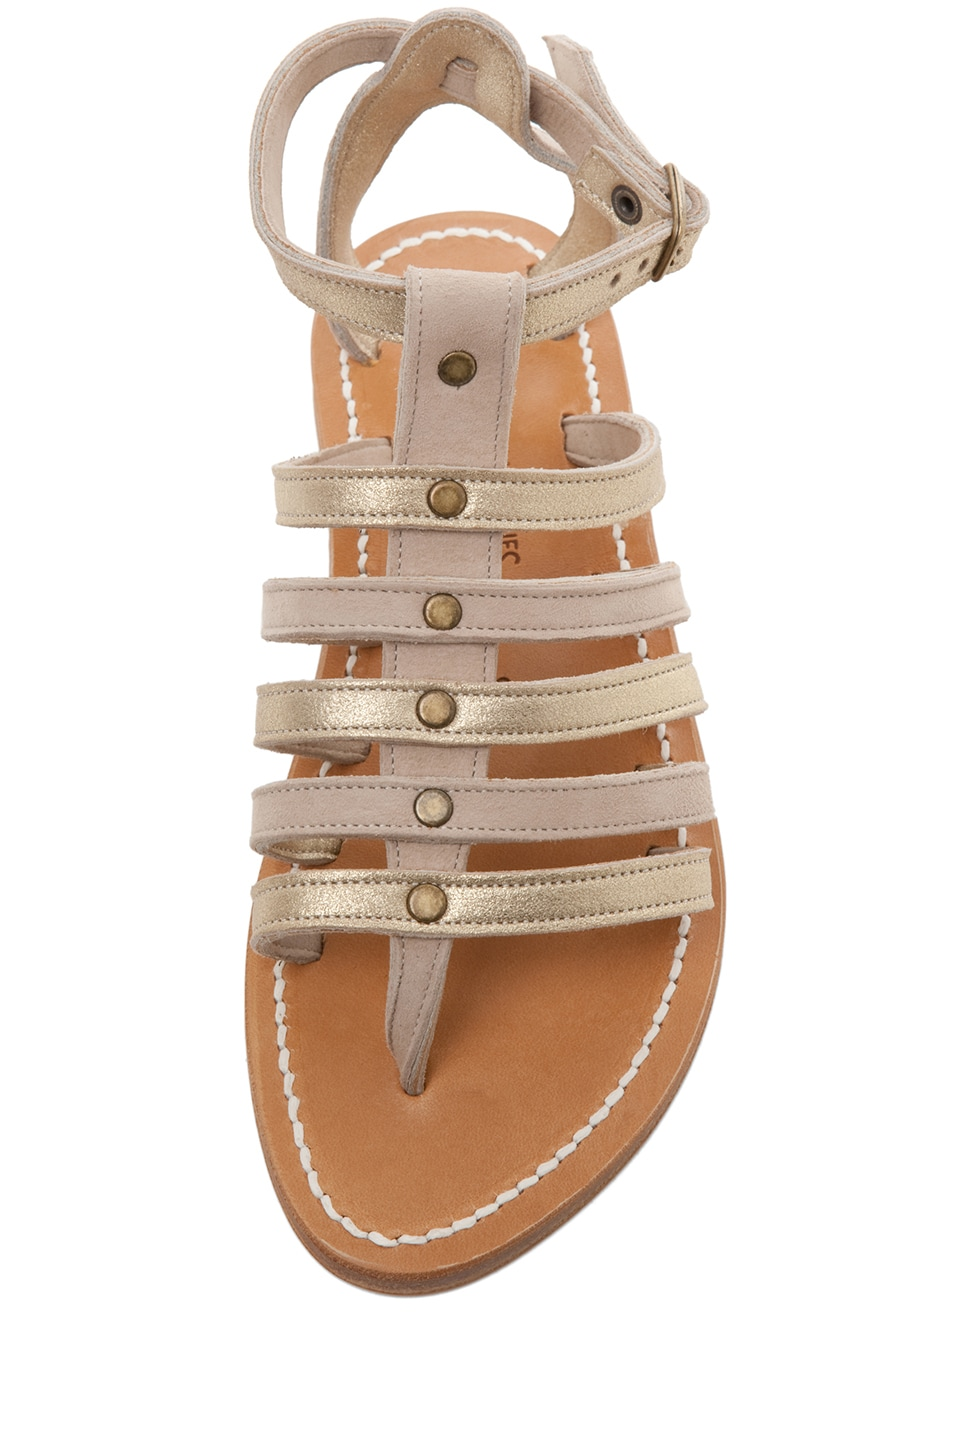 Image 4 of K Jacques Agopos Suede Interbi Gladiator Sandals in Nude & Gold